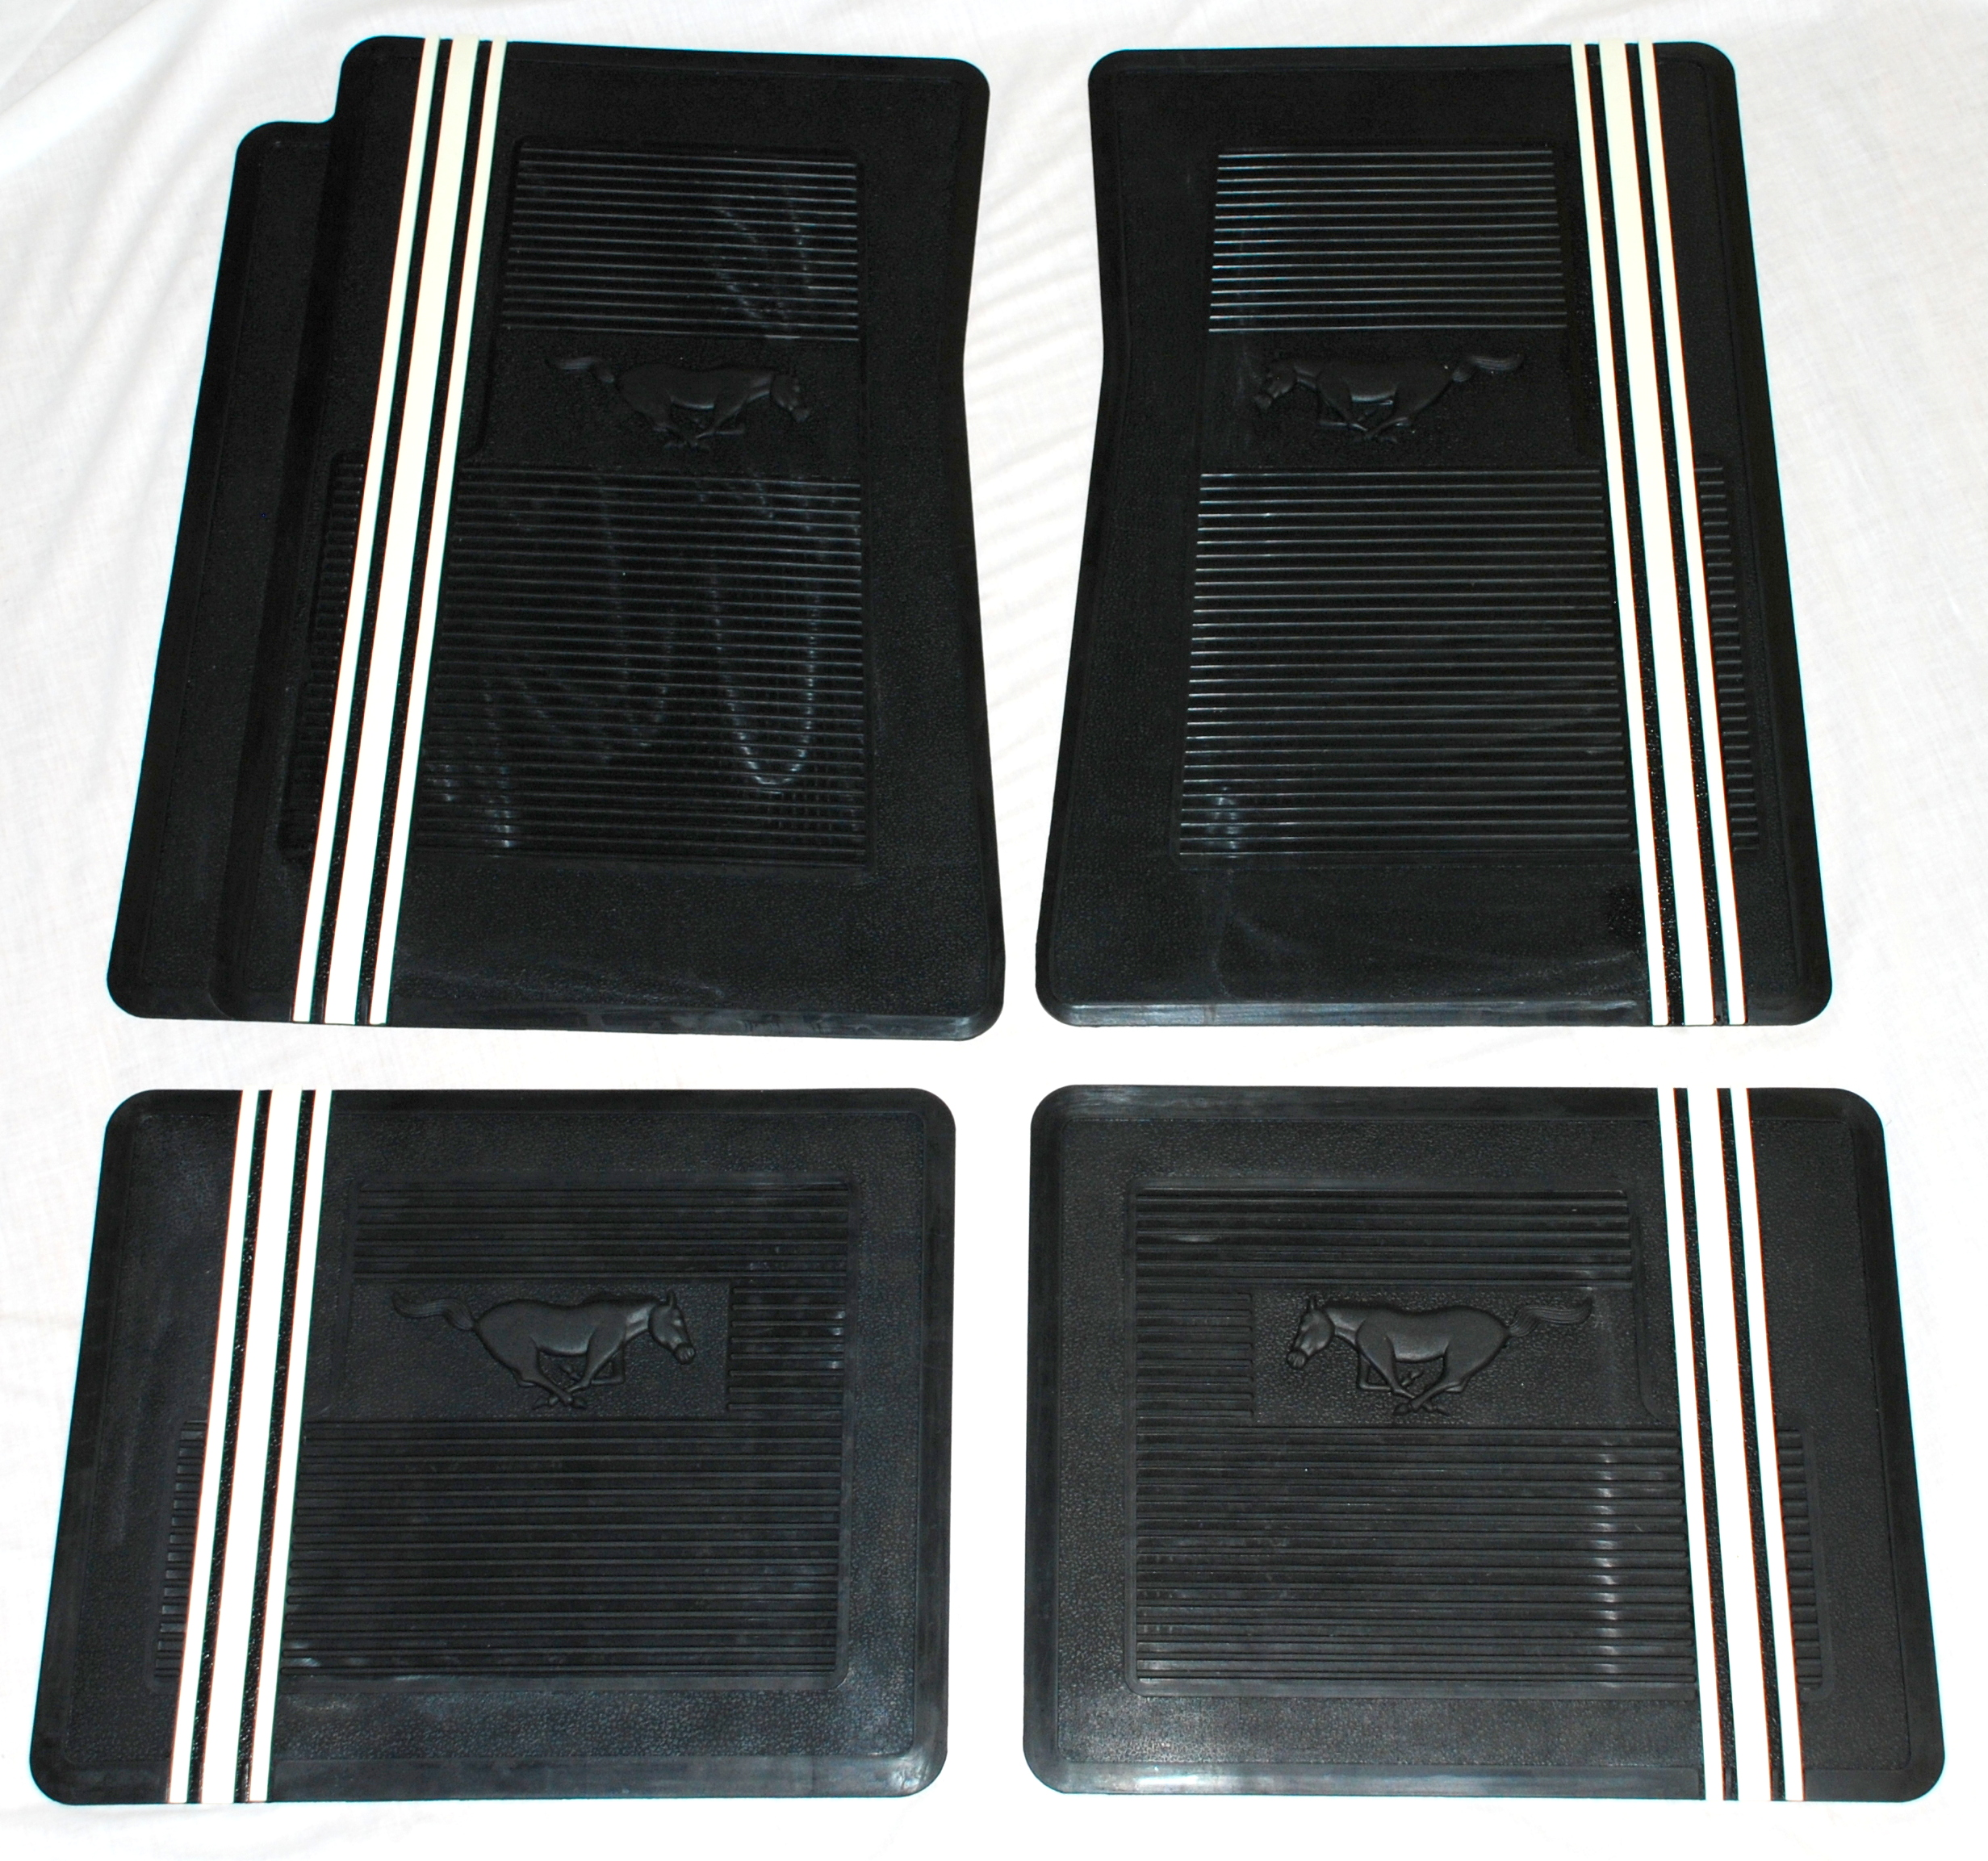 Rubber floor mats with mustang logo - Rubber Floor Mats With Mustang Logo 21